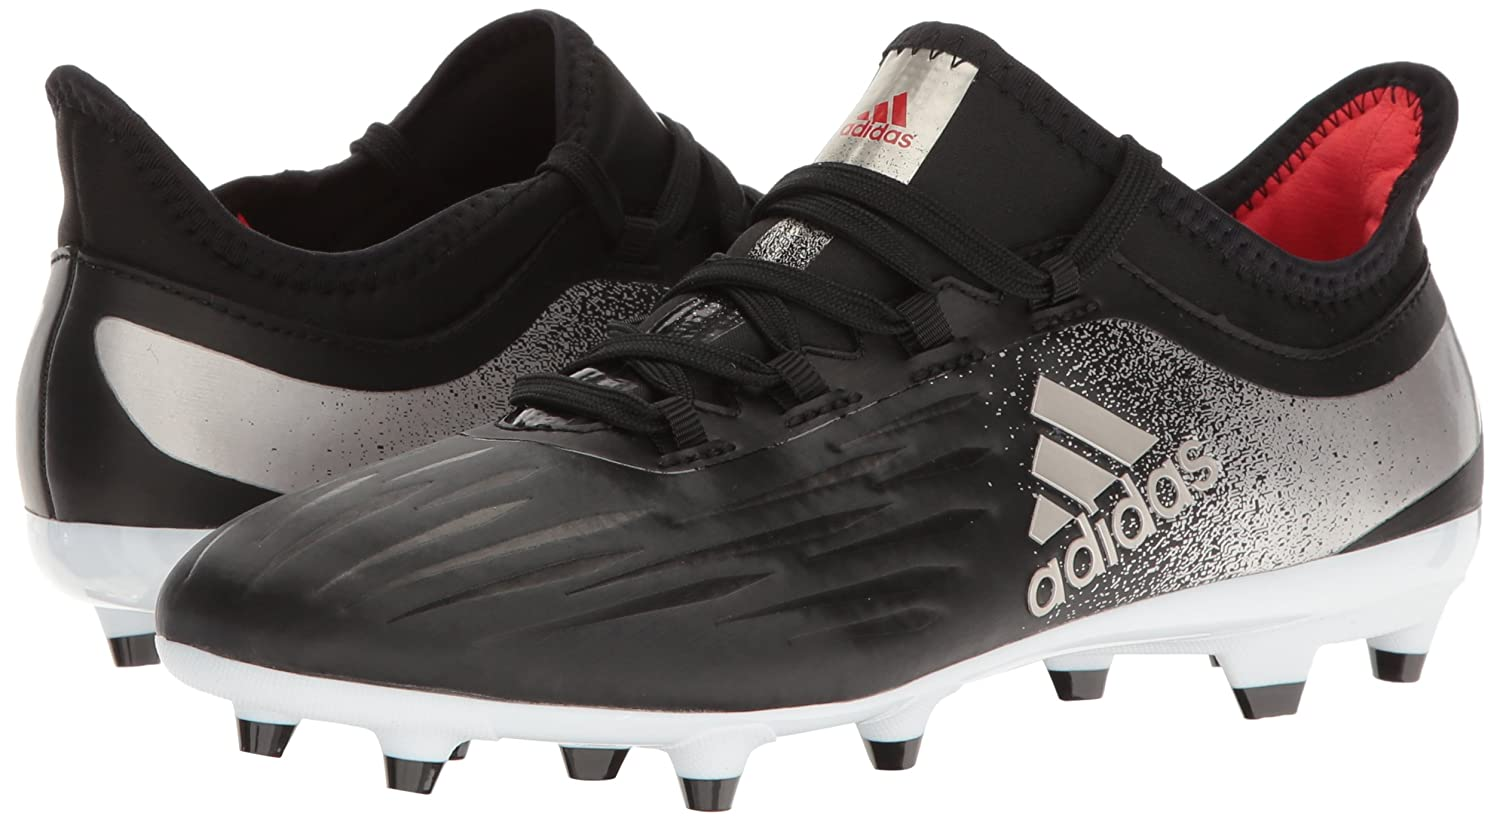 adidas Women's X 17.2 Fg W Soccer Shoe B01H2CG9XK 9 B(M) US|Black/Platino Core Red S